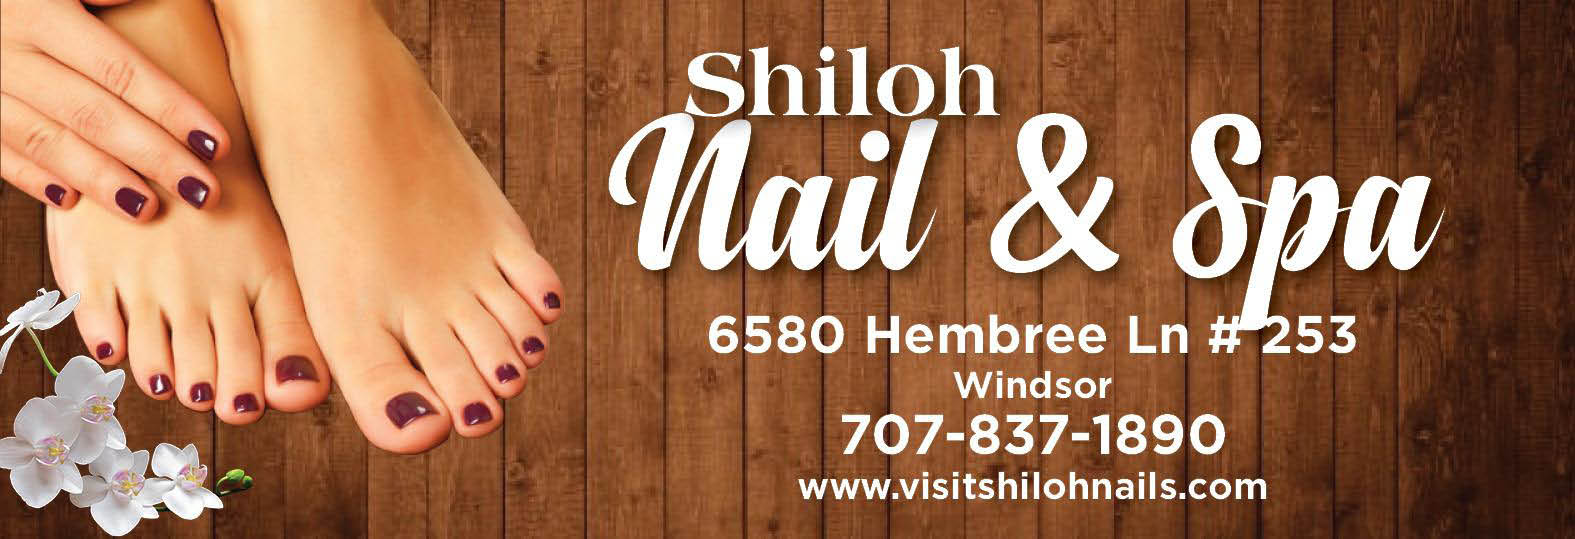 Shiloh Nails & Spa in Windsor, CA banner image